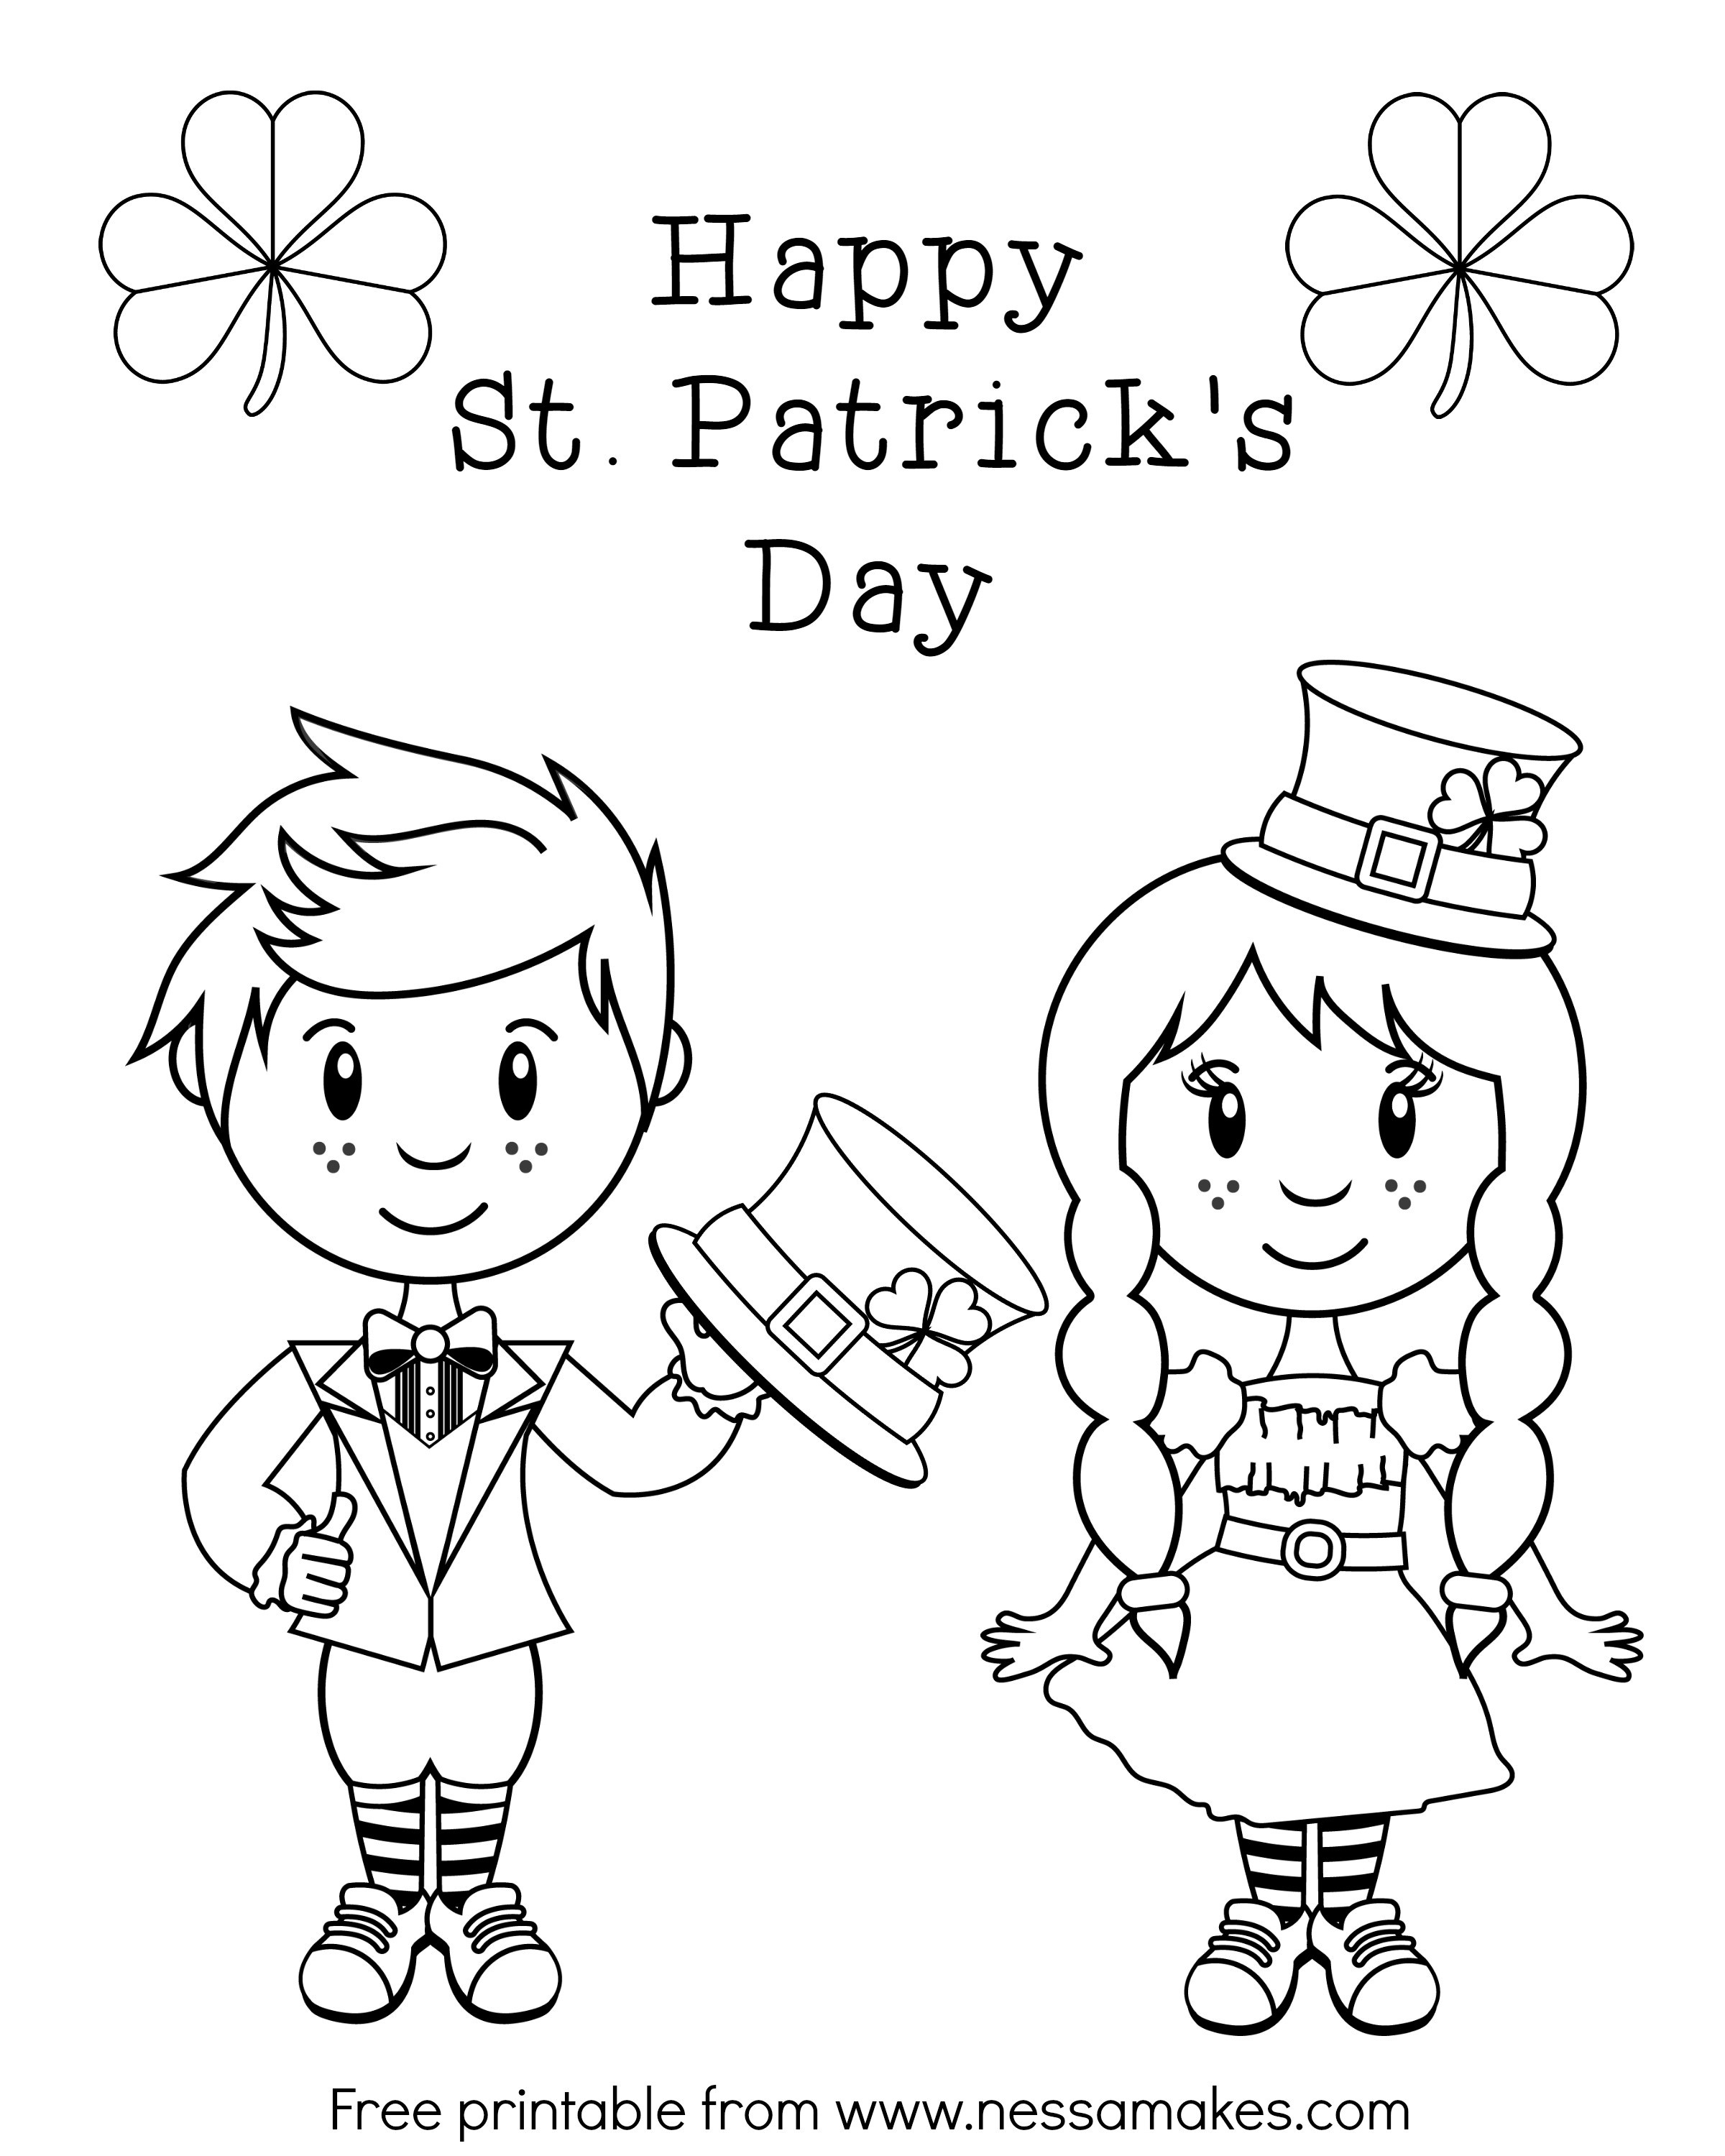 Leprechaun Coloring Pages Leprechaun Coloring Pages Girl Free For - Free Printable Saint Patrick Coloring Pages